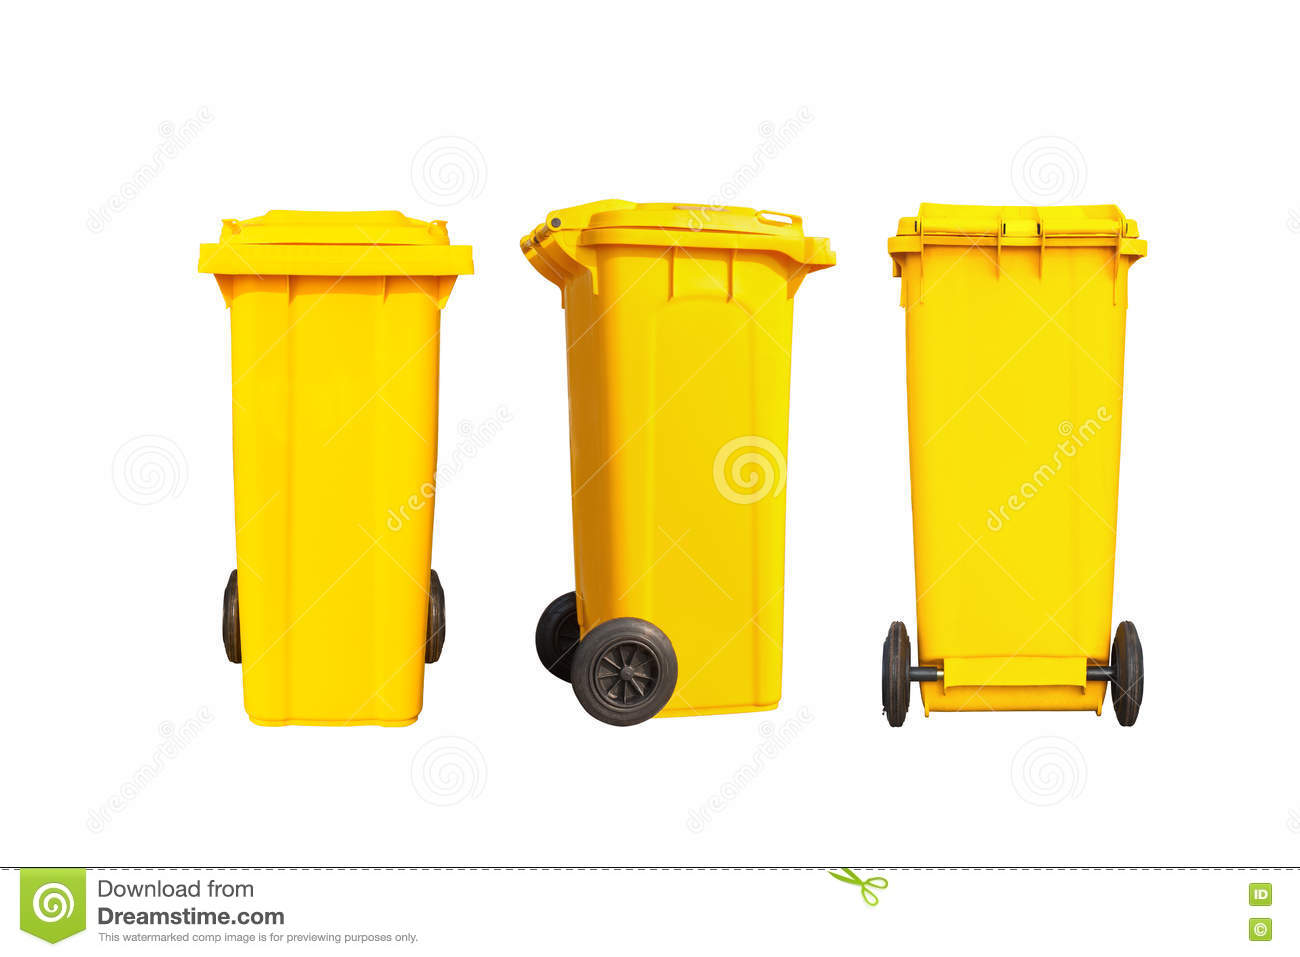 Isolated big yellow garbage bin or trash can with black wheels